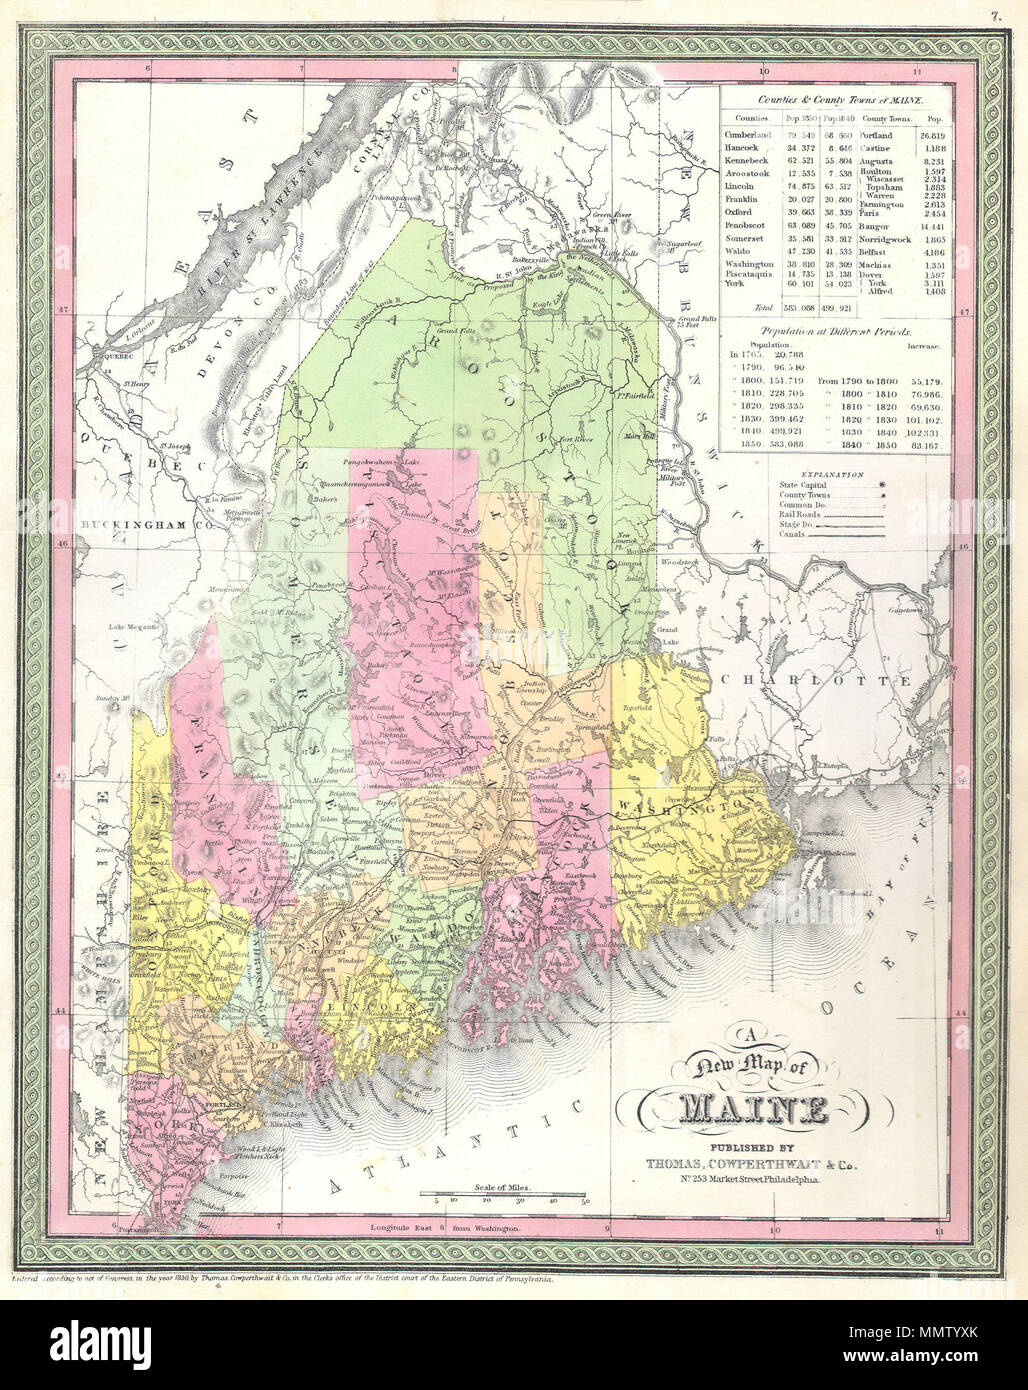 State Of Maine Map With Cities.English A Rare Map Of The State Of Maine Produced By S A Mitchell